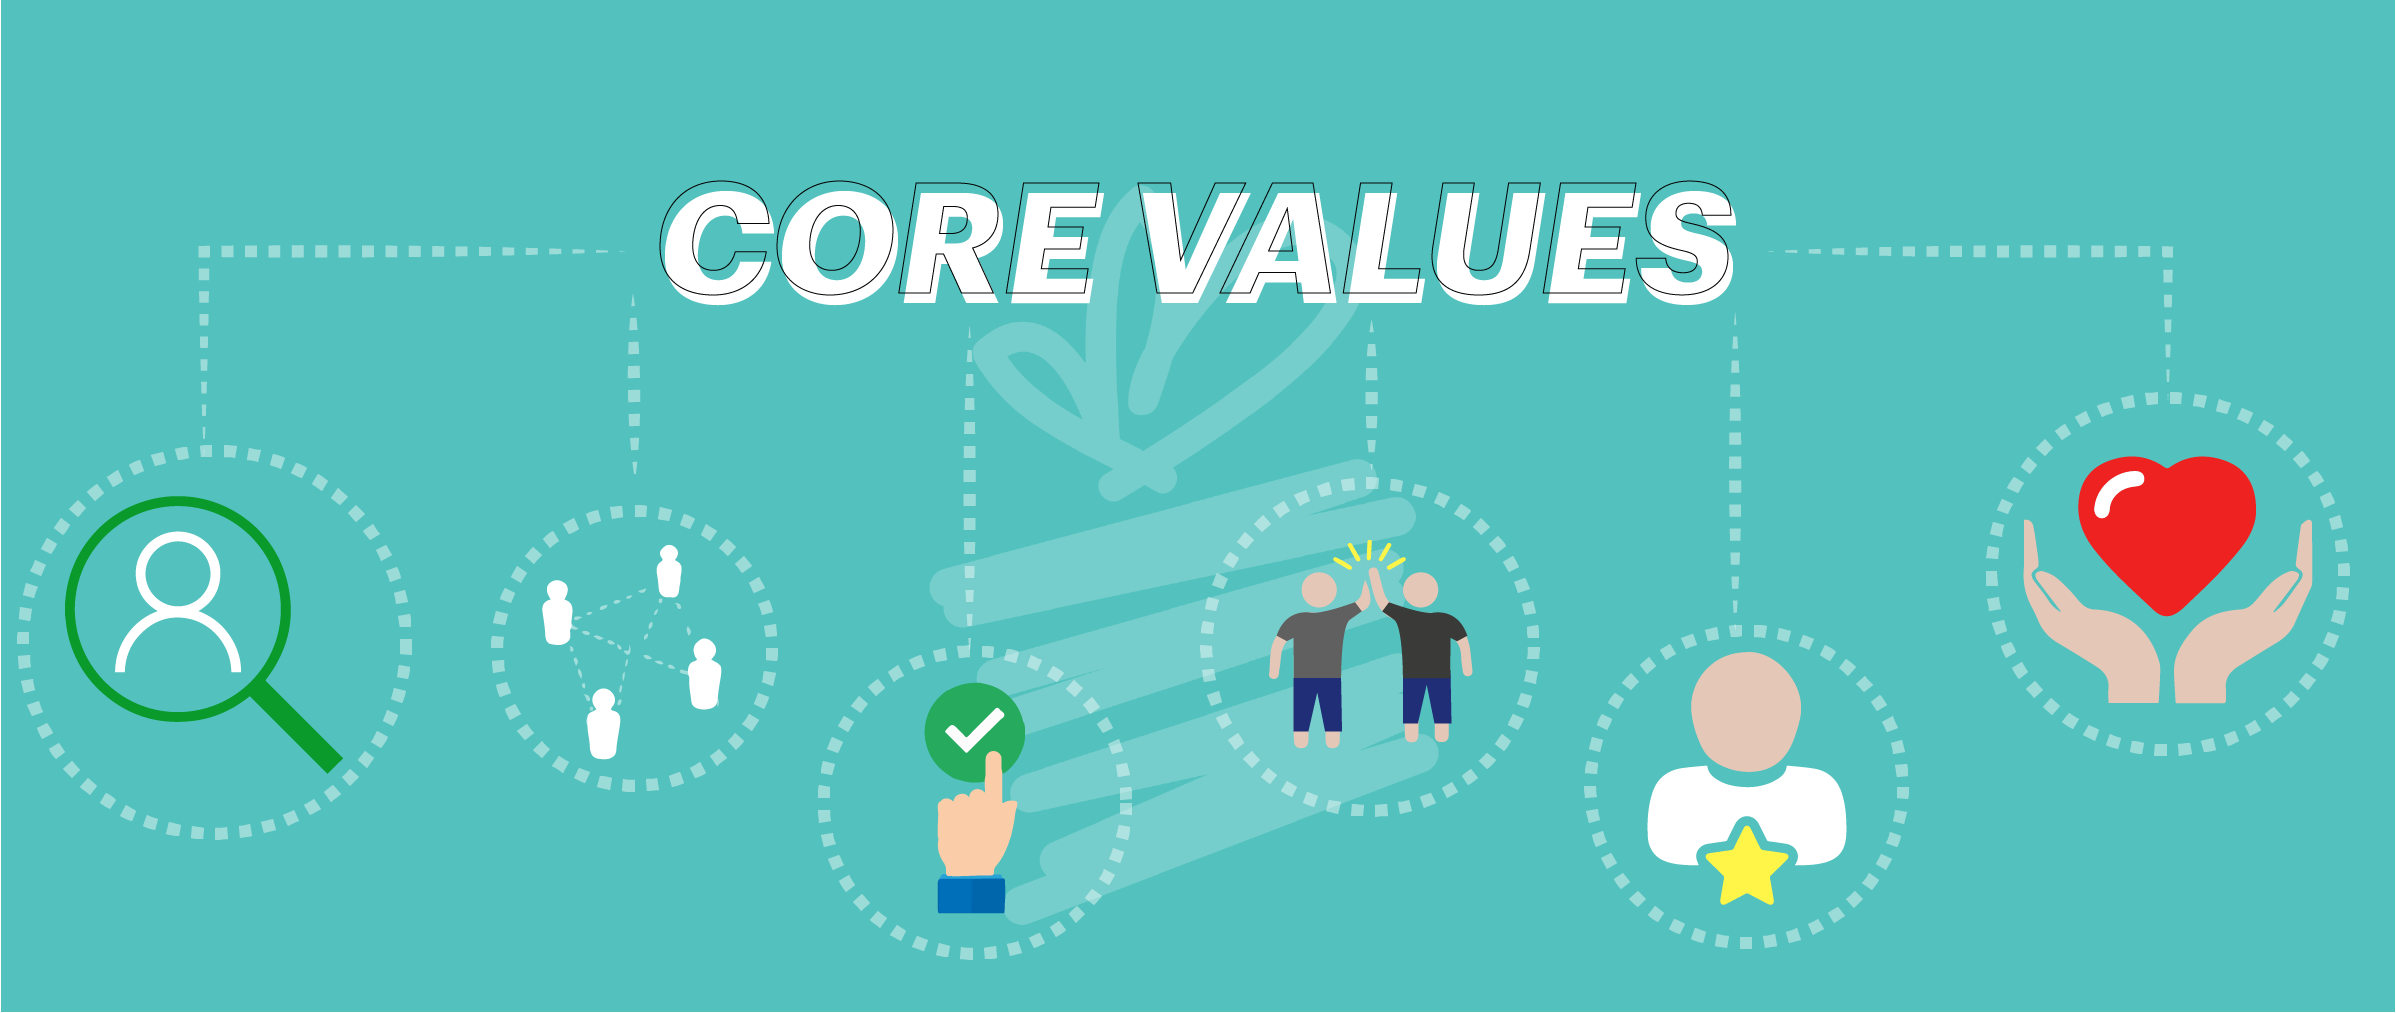 How to Build Core Values that Actually Drive Success